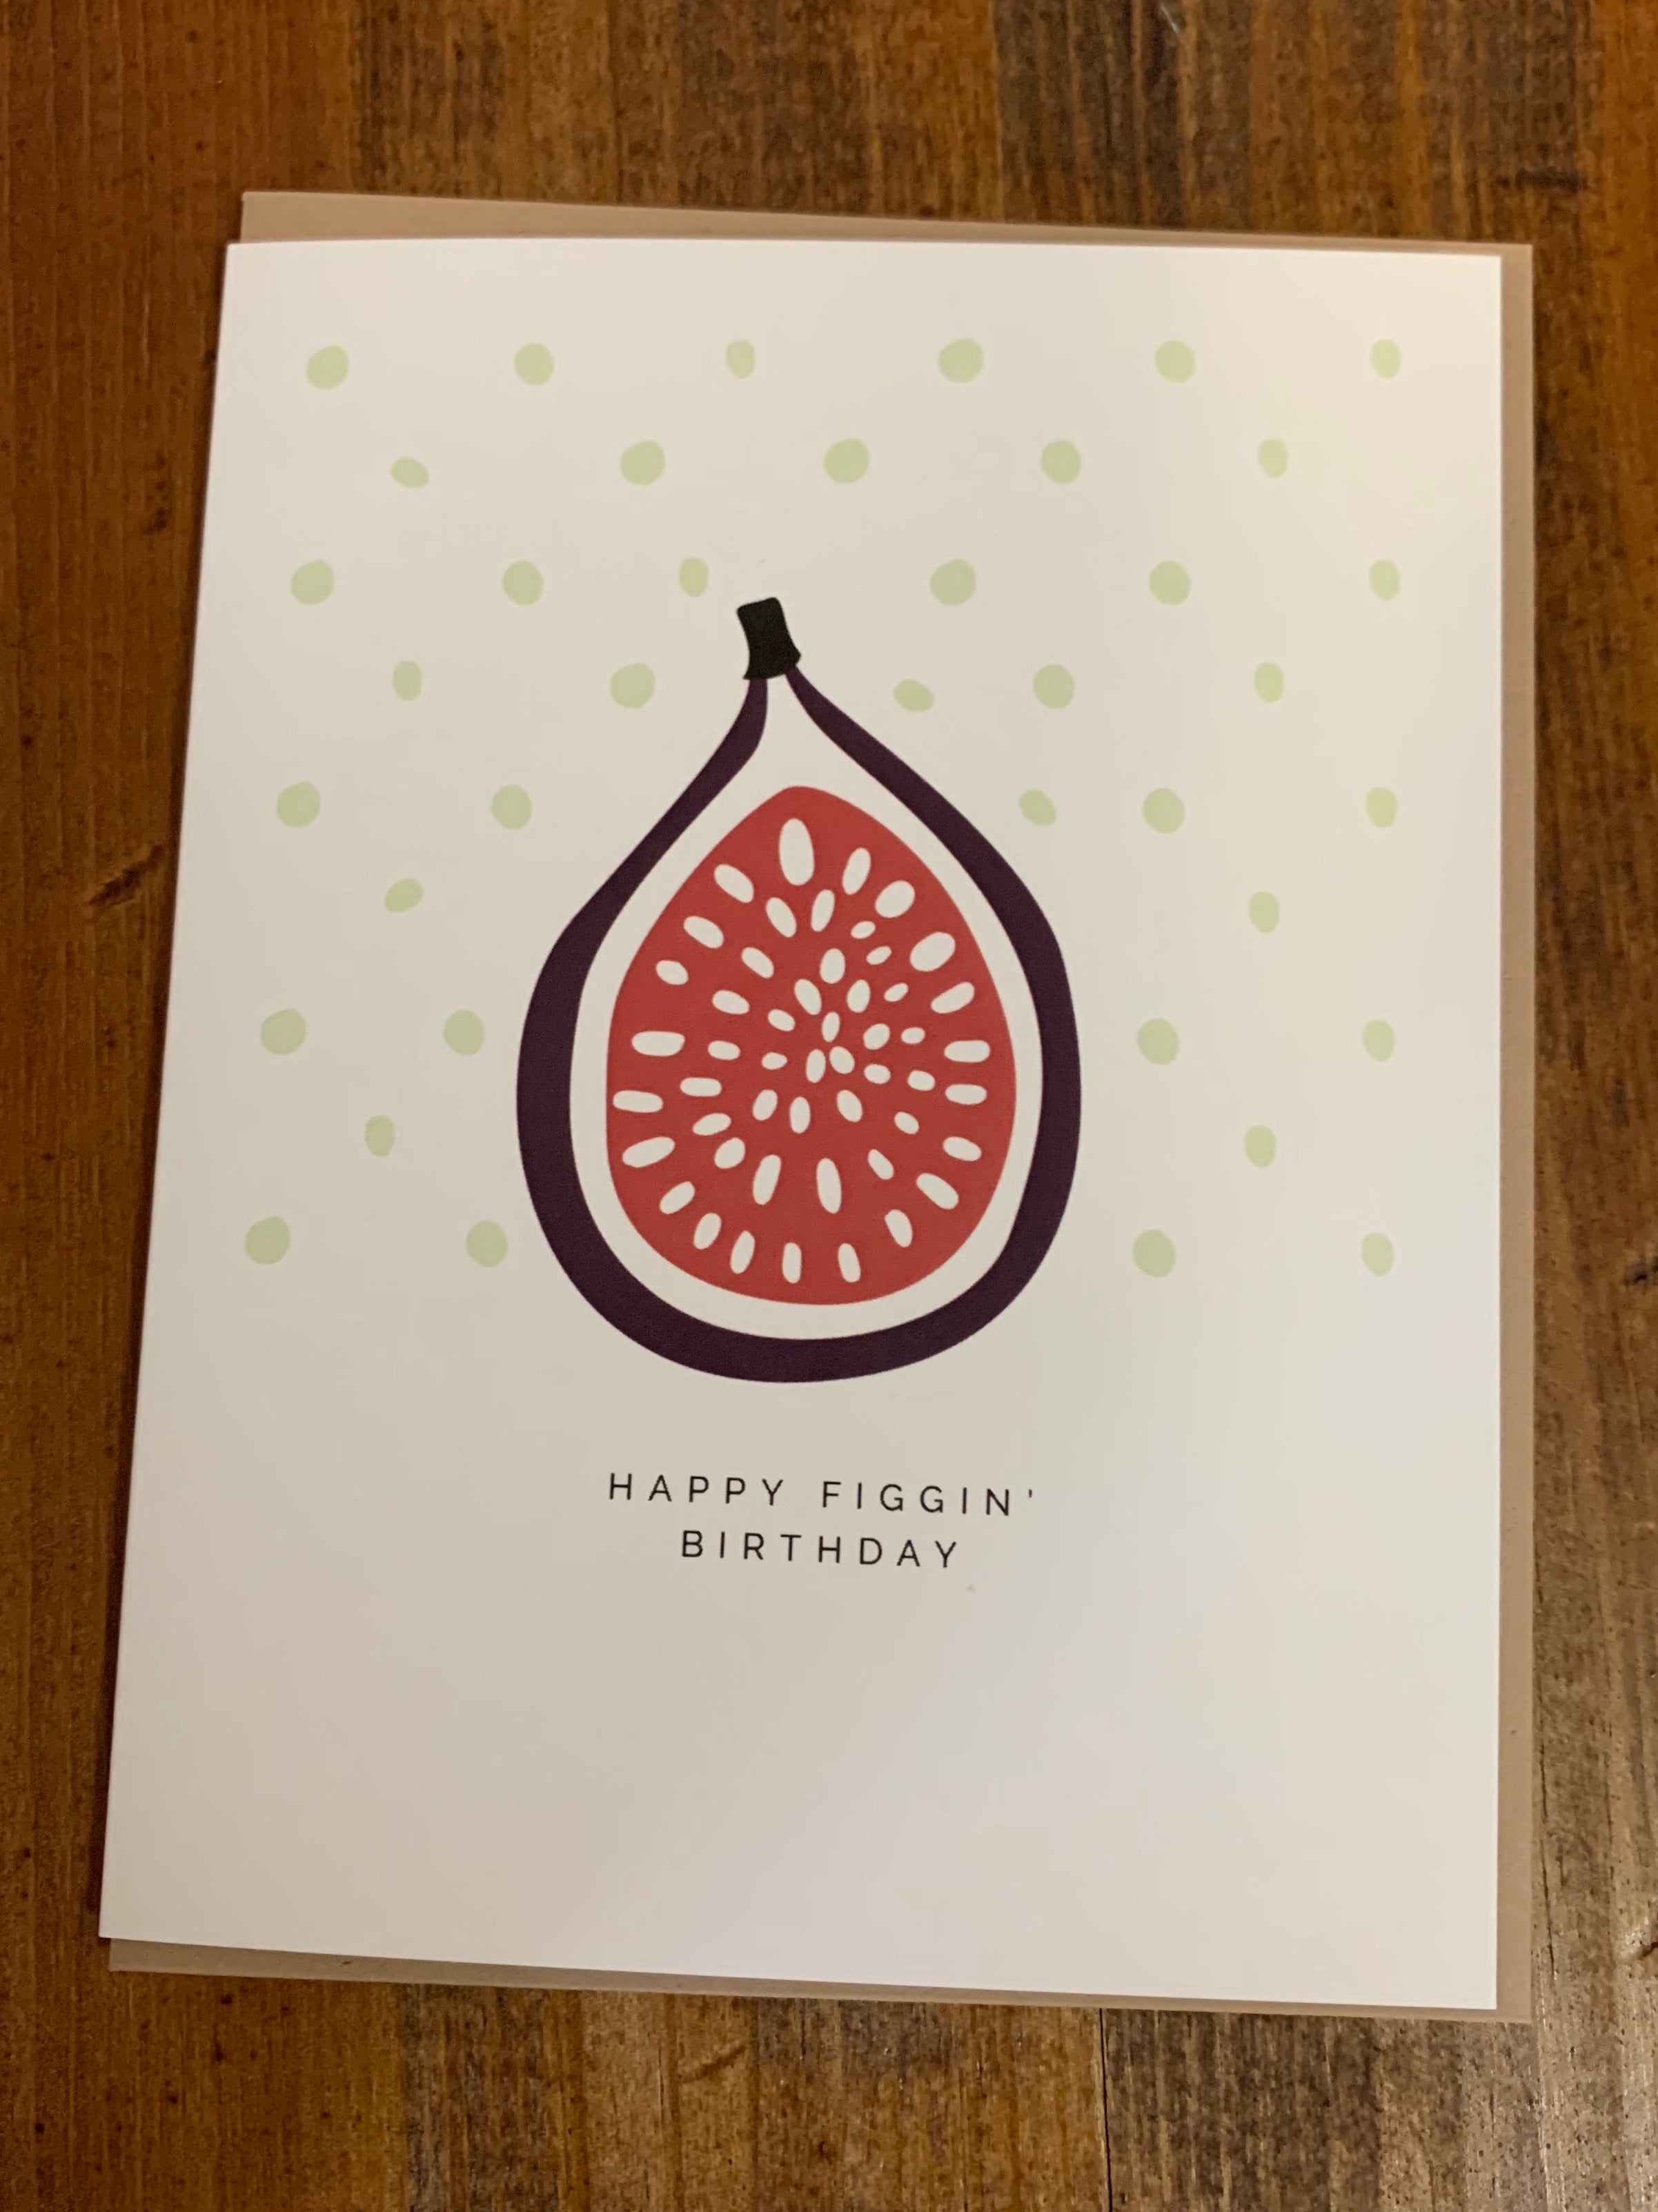 Happy Figgin' Birthday/ Birthday / Greeting Card